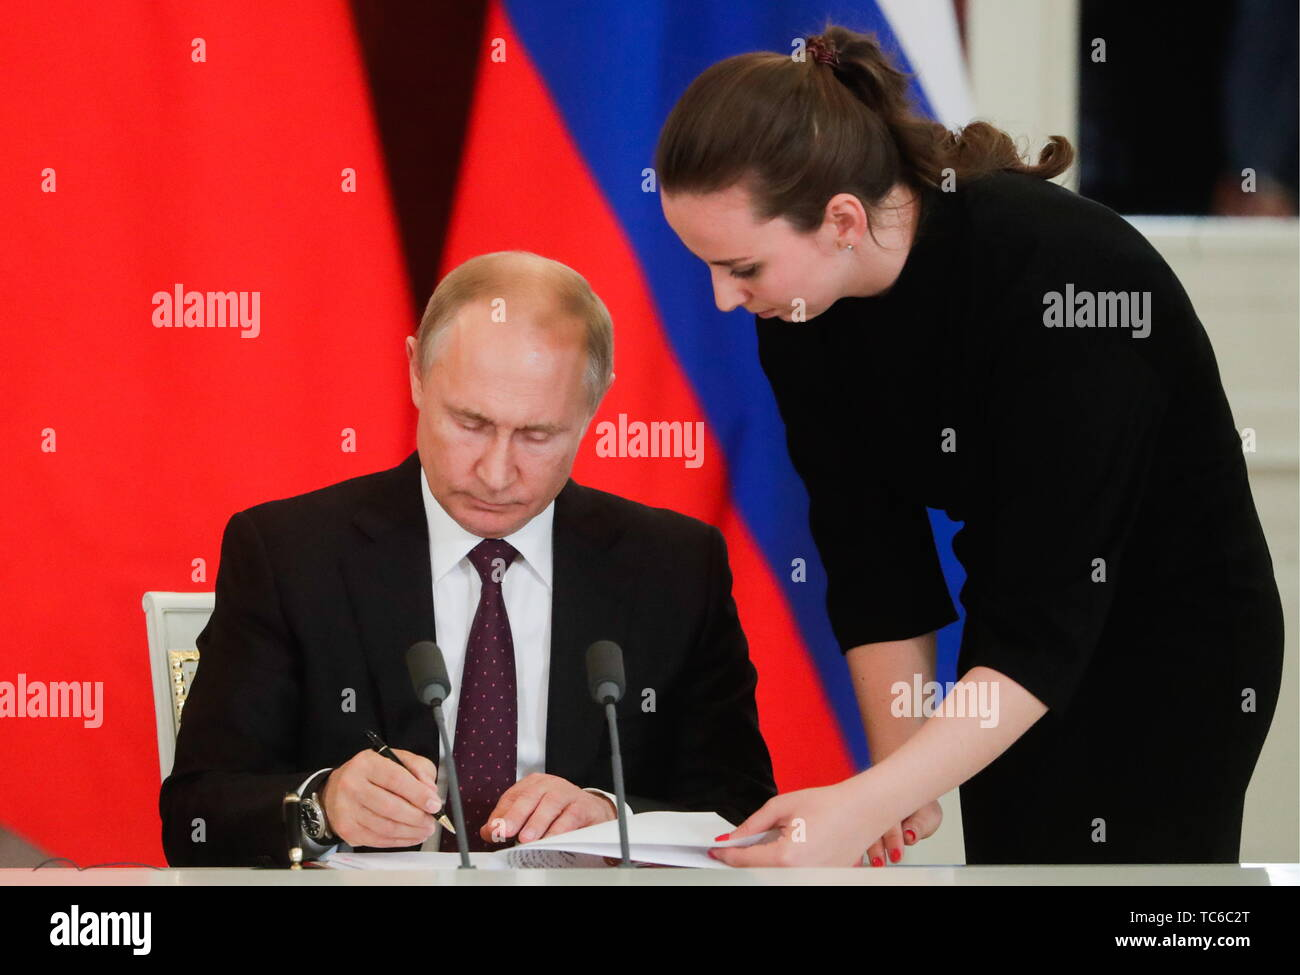 Moscow, Russia. 05th June, 2019. MOSCOW, RUSSIA - JUNE 5, 2019: Russia's President Vladimir Putin at a ceremony to sign joint documents following Russian-Chinese talks at the Moscow Kremlin. Mikhail Metzel/TASS Credit: ITAR-TASS News Agency/Alamy Live News - Stock Image